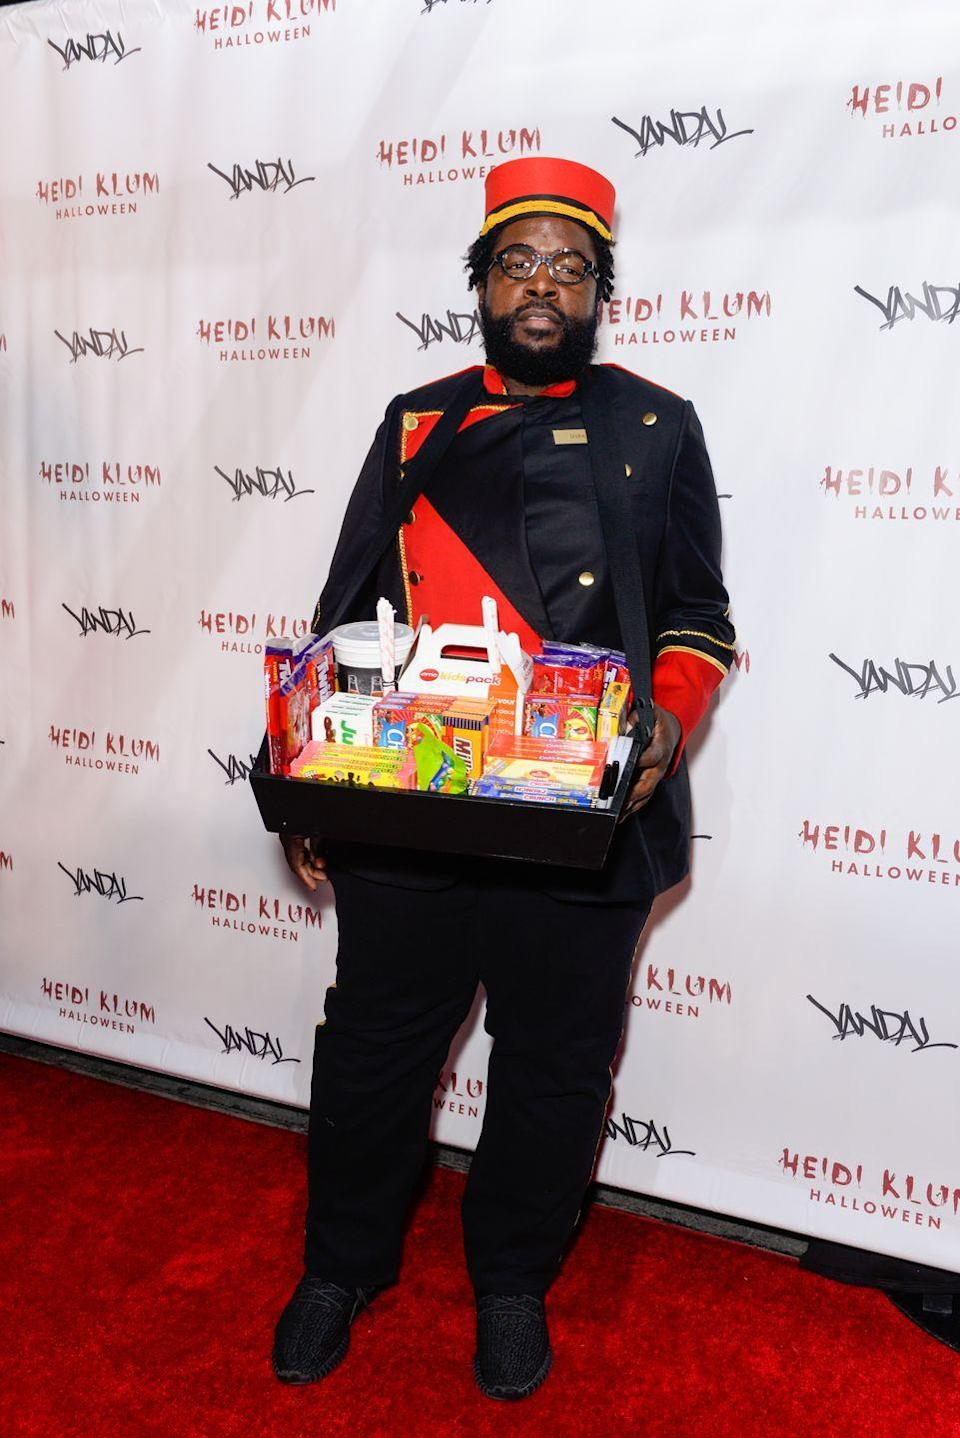 """<p>A black suit, a red bellhop hat, and a basket to wear around your neck is all your need for this clever candy vendor costume. The best part: You'll have snacks with you all night long in case you get hungry. </p><p><a class=""""link rapid-noclick-resp"""" href=""""https://www.amazon.com/Deluxe-Bellhop-Usher-Theatrical-Quality/dp/B00187Z38I/?tag=syn-yahoo-20&ascsubtag=%5Bartid%7C10070.g.28171554%5Bsrc%7Cyahoo-us"""" rel=""""nofollow noopener"""" target=""""_blank"""" data-ylk=""""slk:SHOP BELLHOP HAT"""">SHOP BELLHOP HAT</a></p>"""